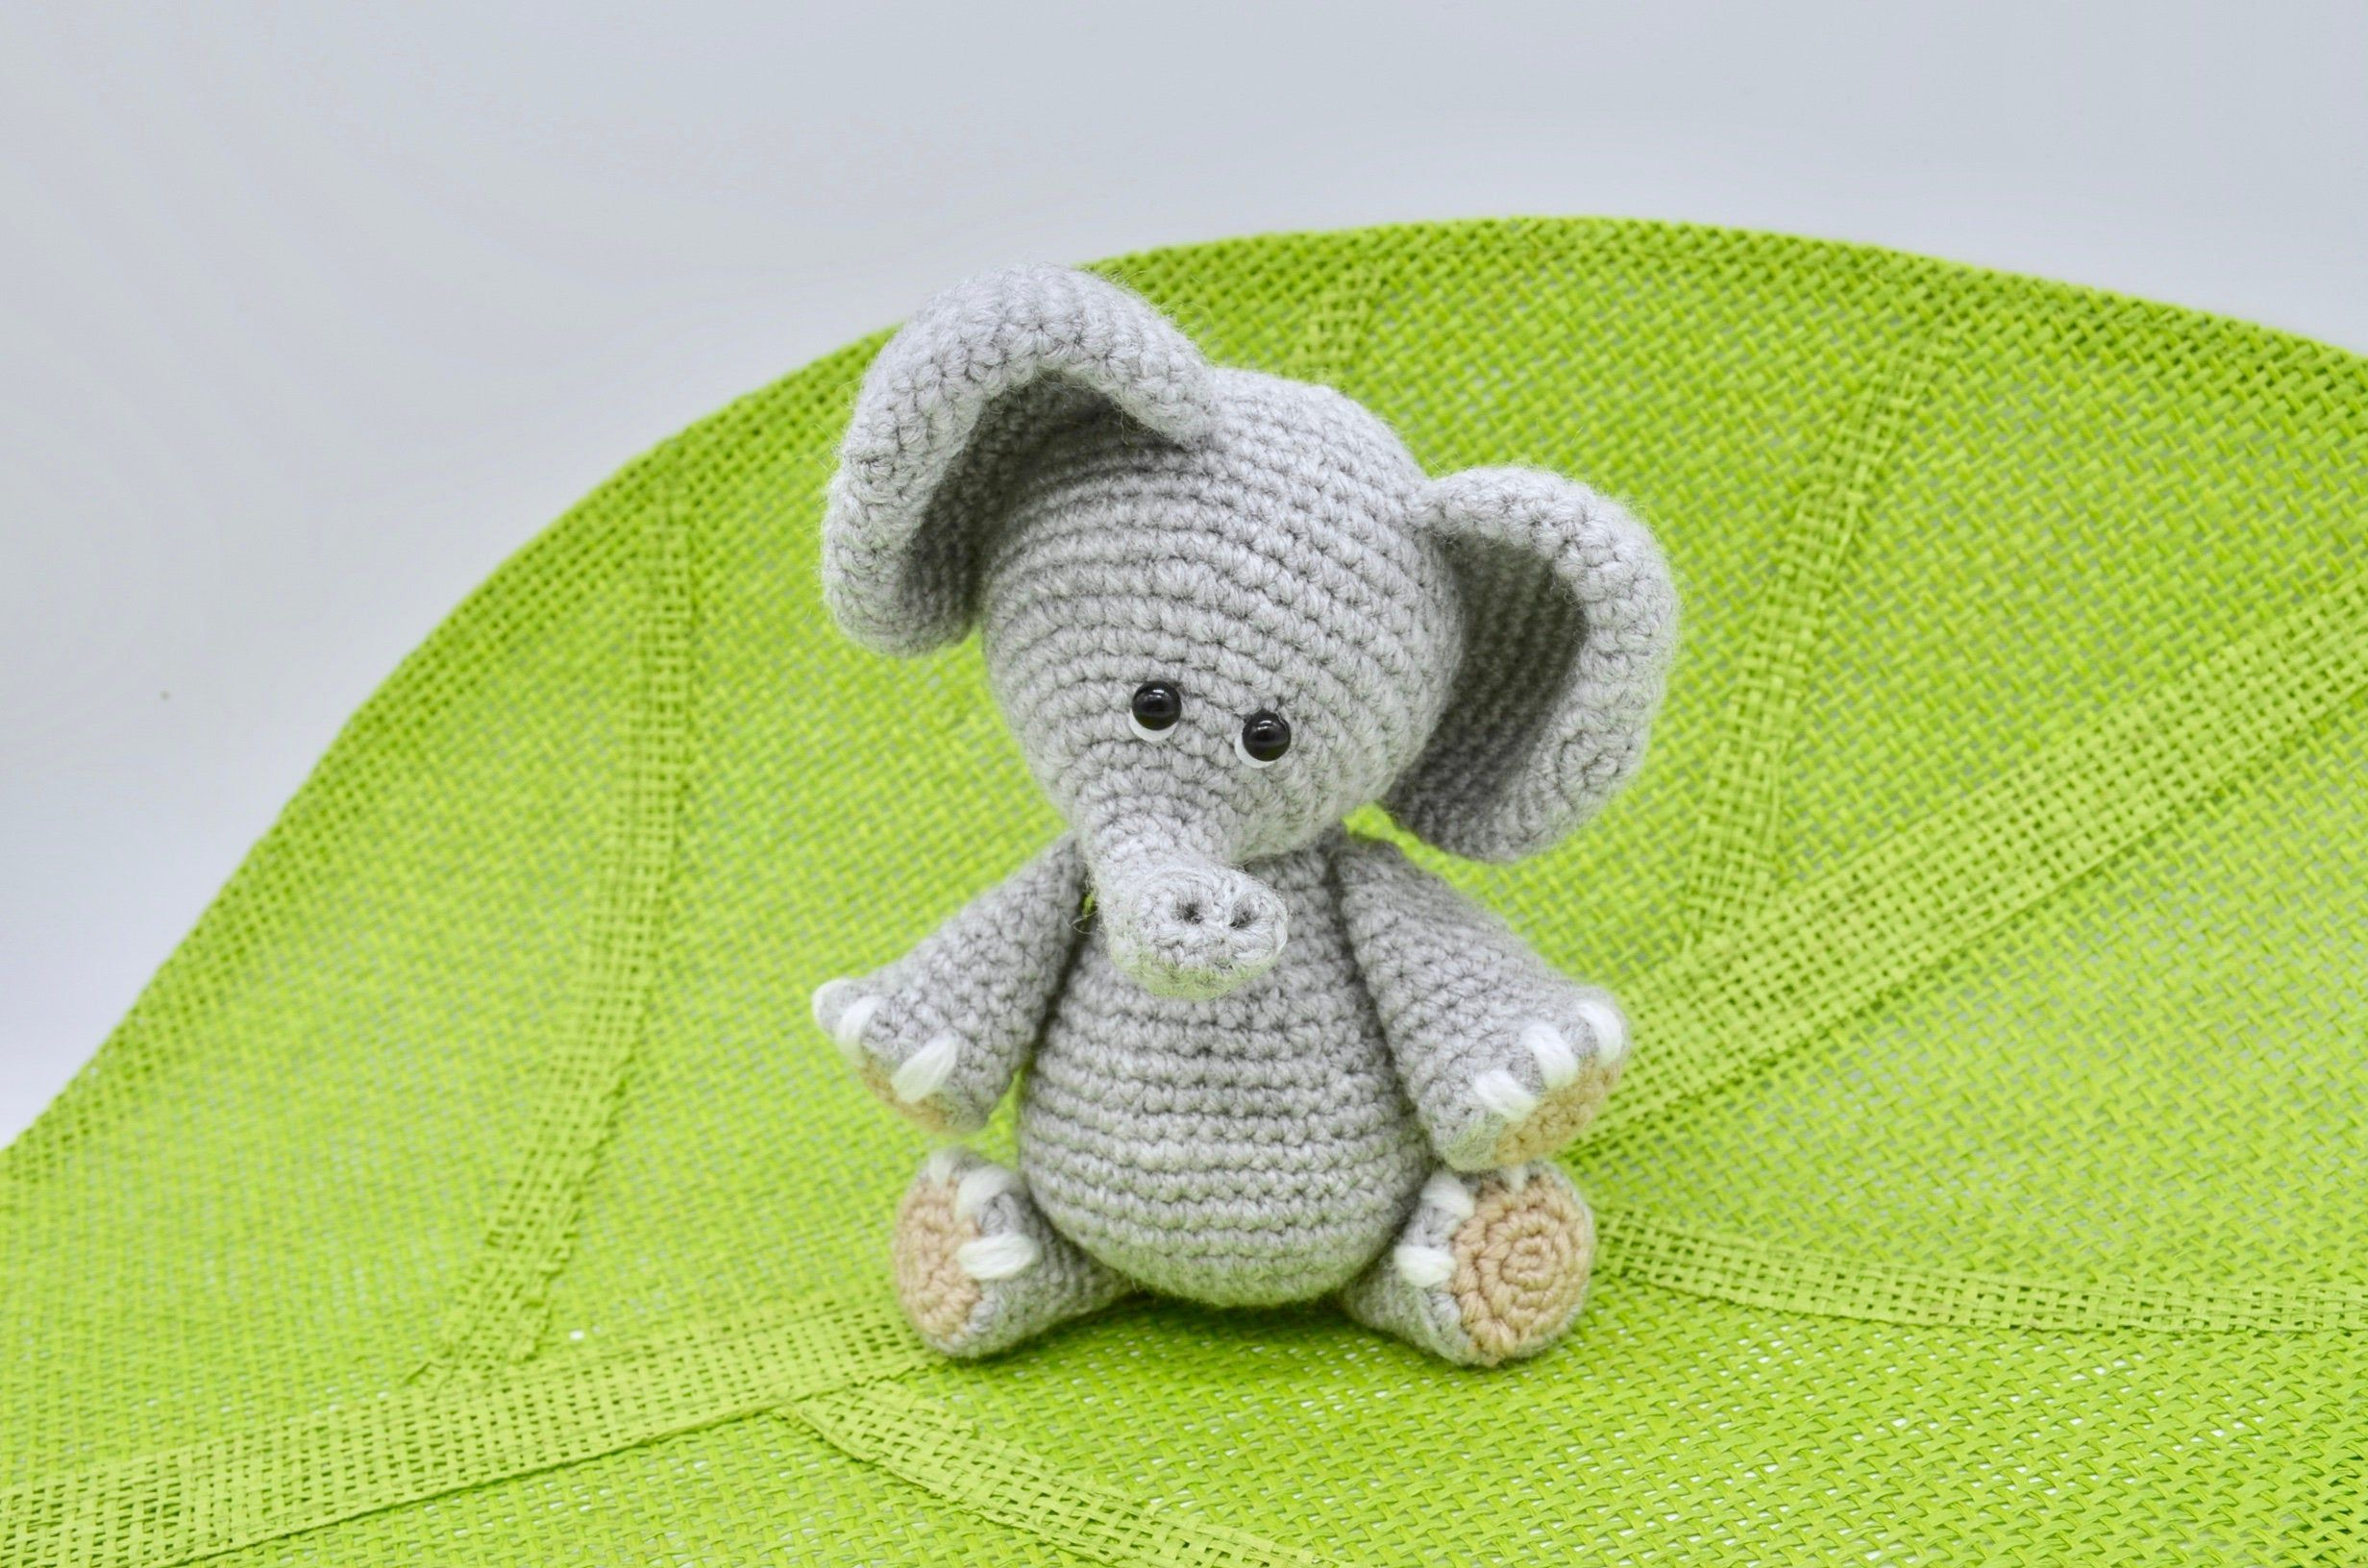 Crochet Elephant Pattern, Crochet Elephant Toy Ellie #crochetelephantpattern Crochet  Elephant Pattern, Crochet Elephant Toy Ellie #crochetelephantpattern